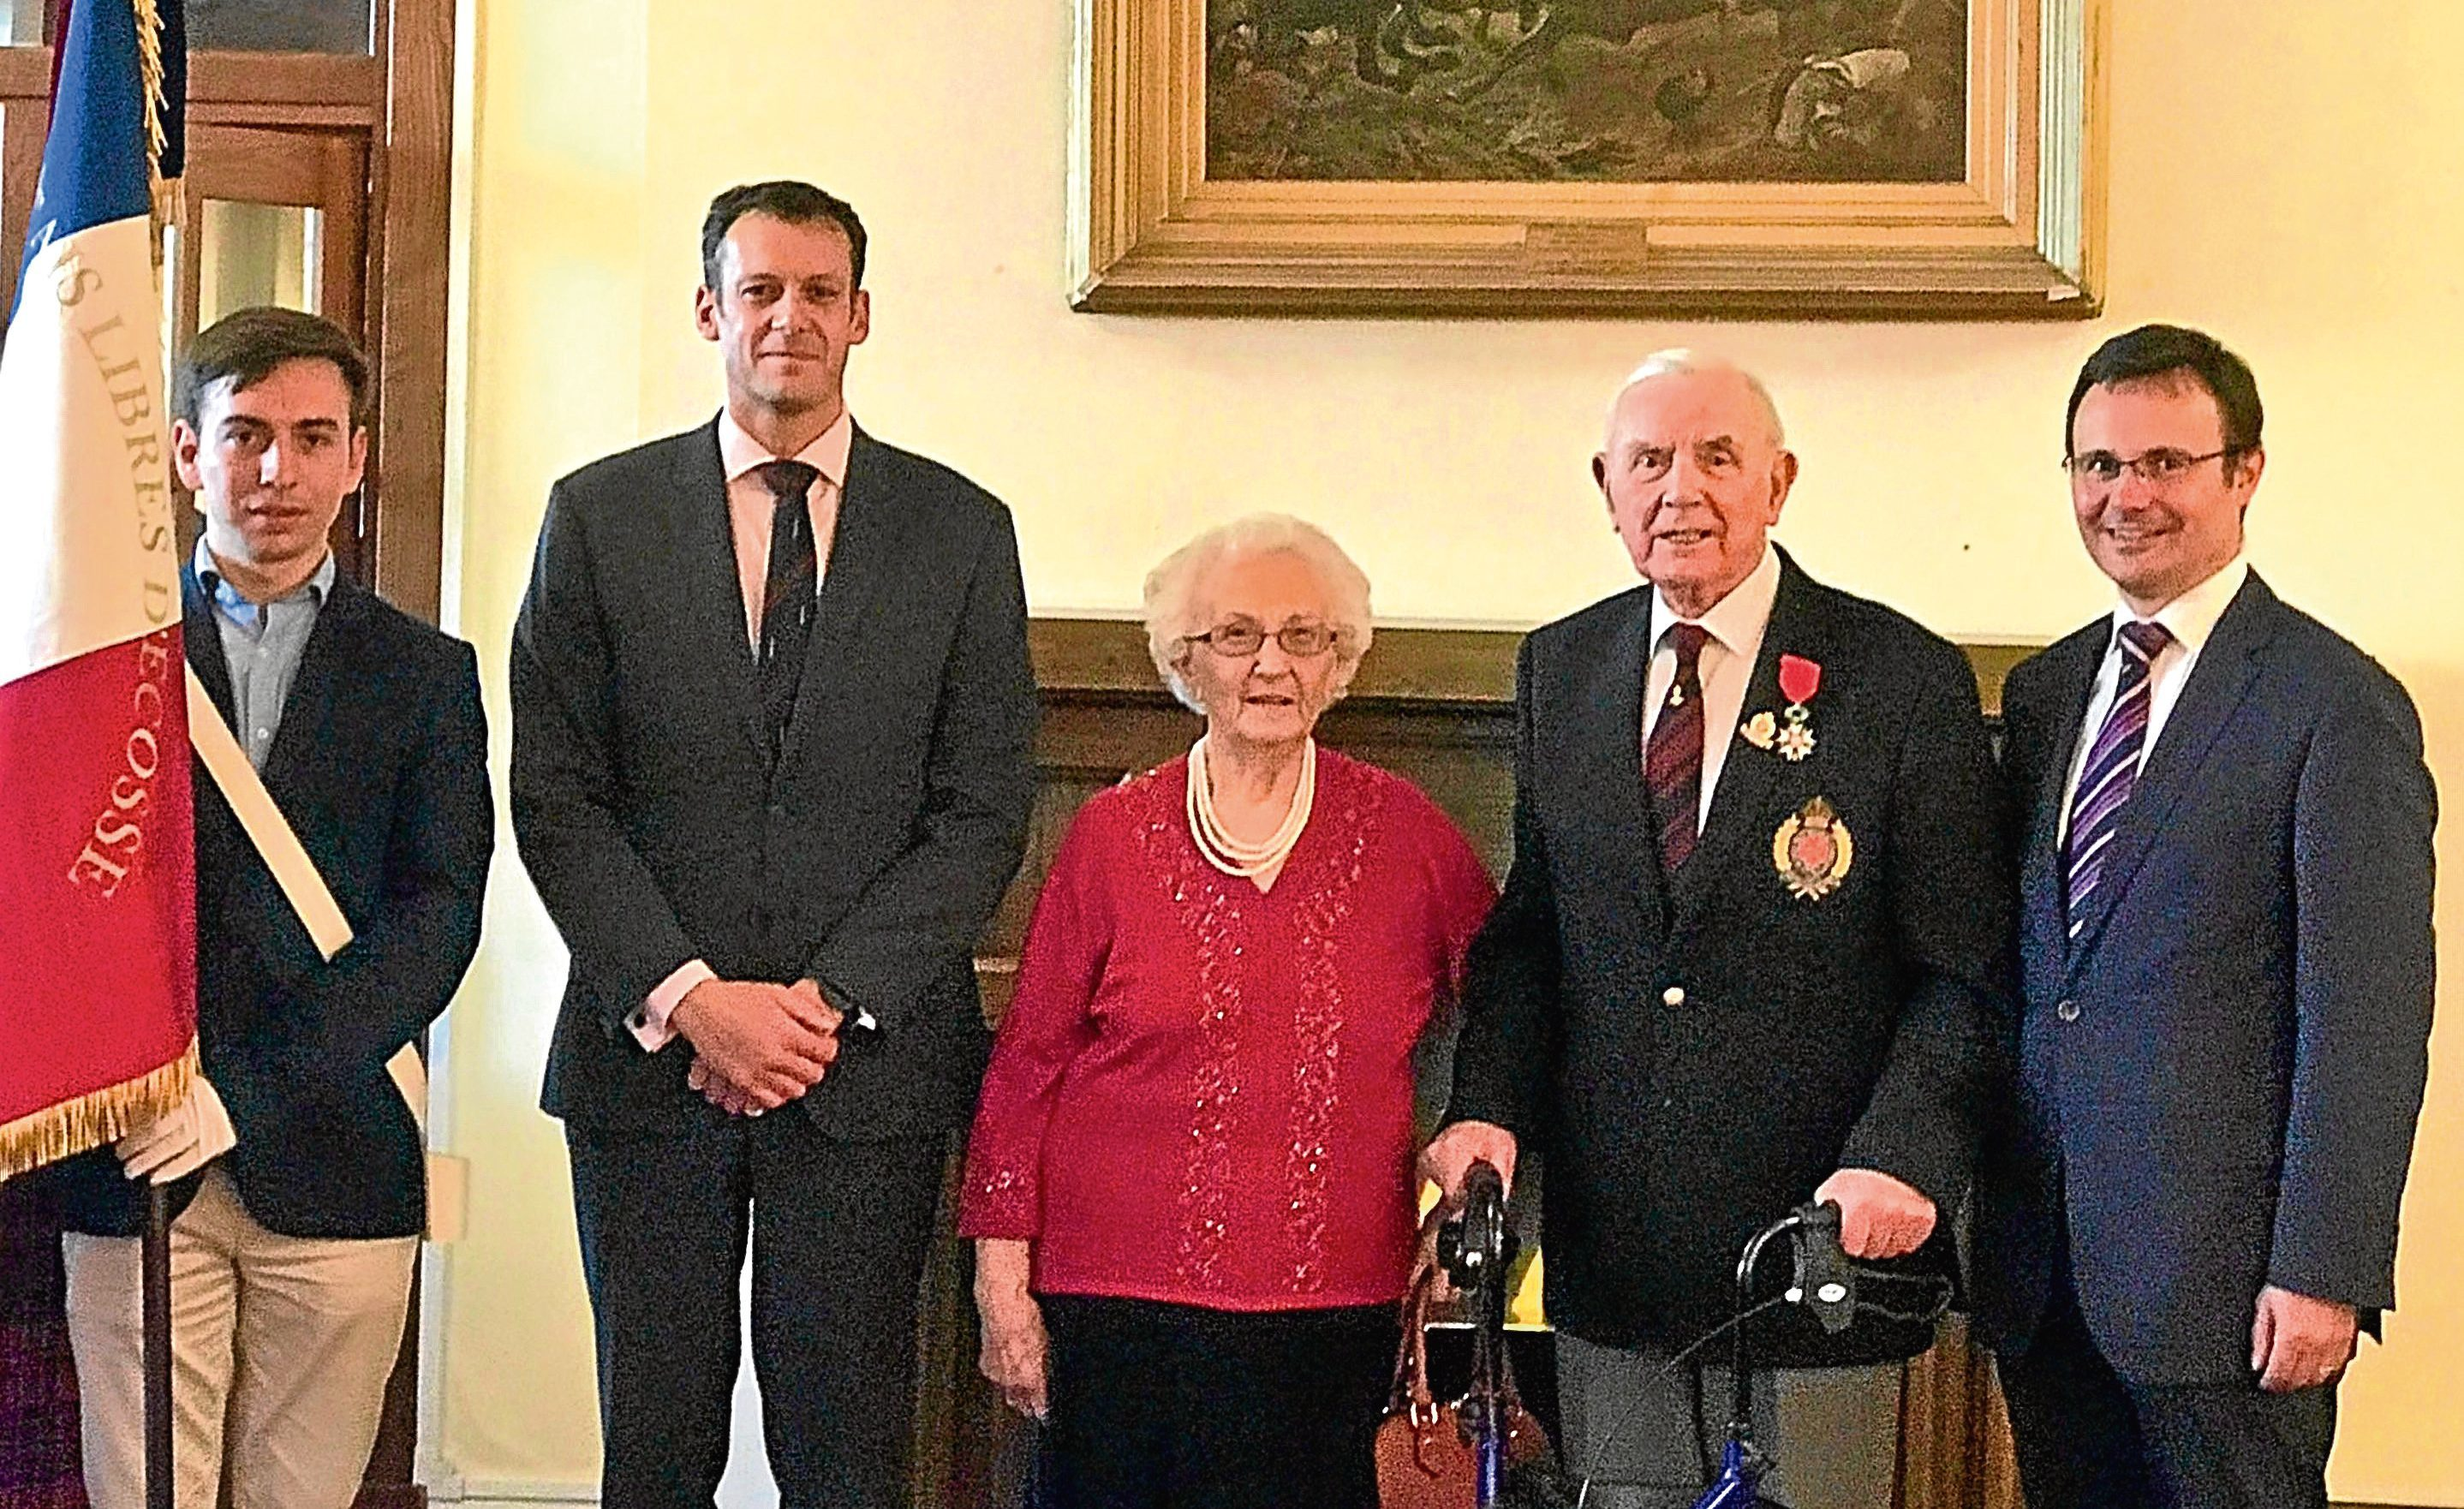 Irvine Rae (second right) after receiving the Legion d'honneur, France's highest honour for his role in the D-Day landings, with French Consul General in Scotland Emmanuel Cocher (right) and his wife Louise Rae (centre)